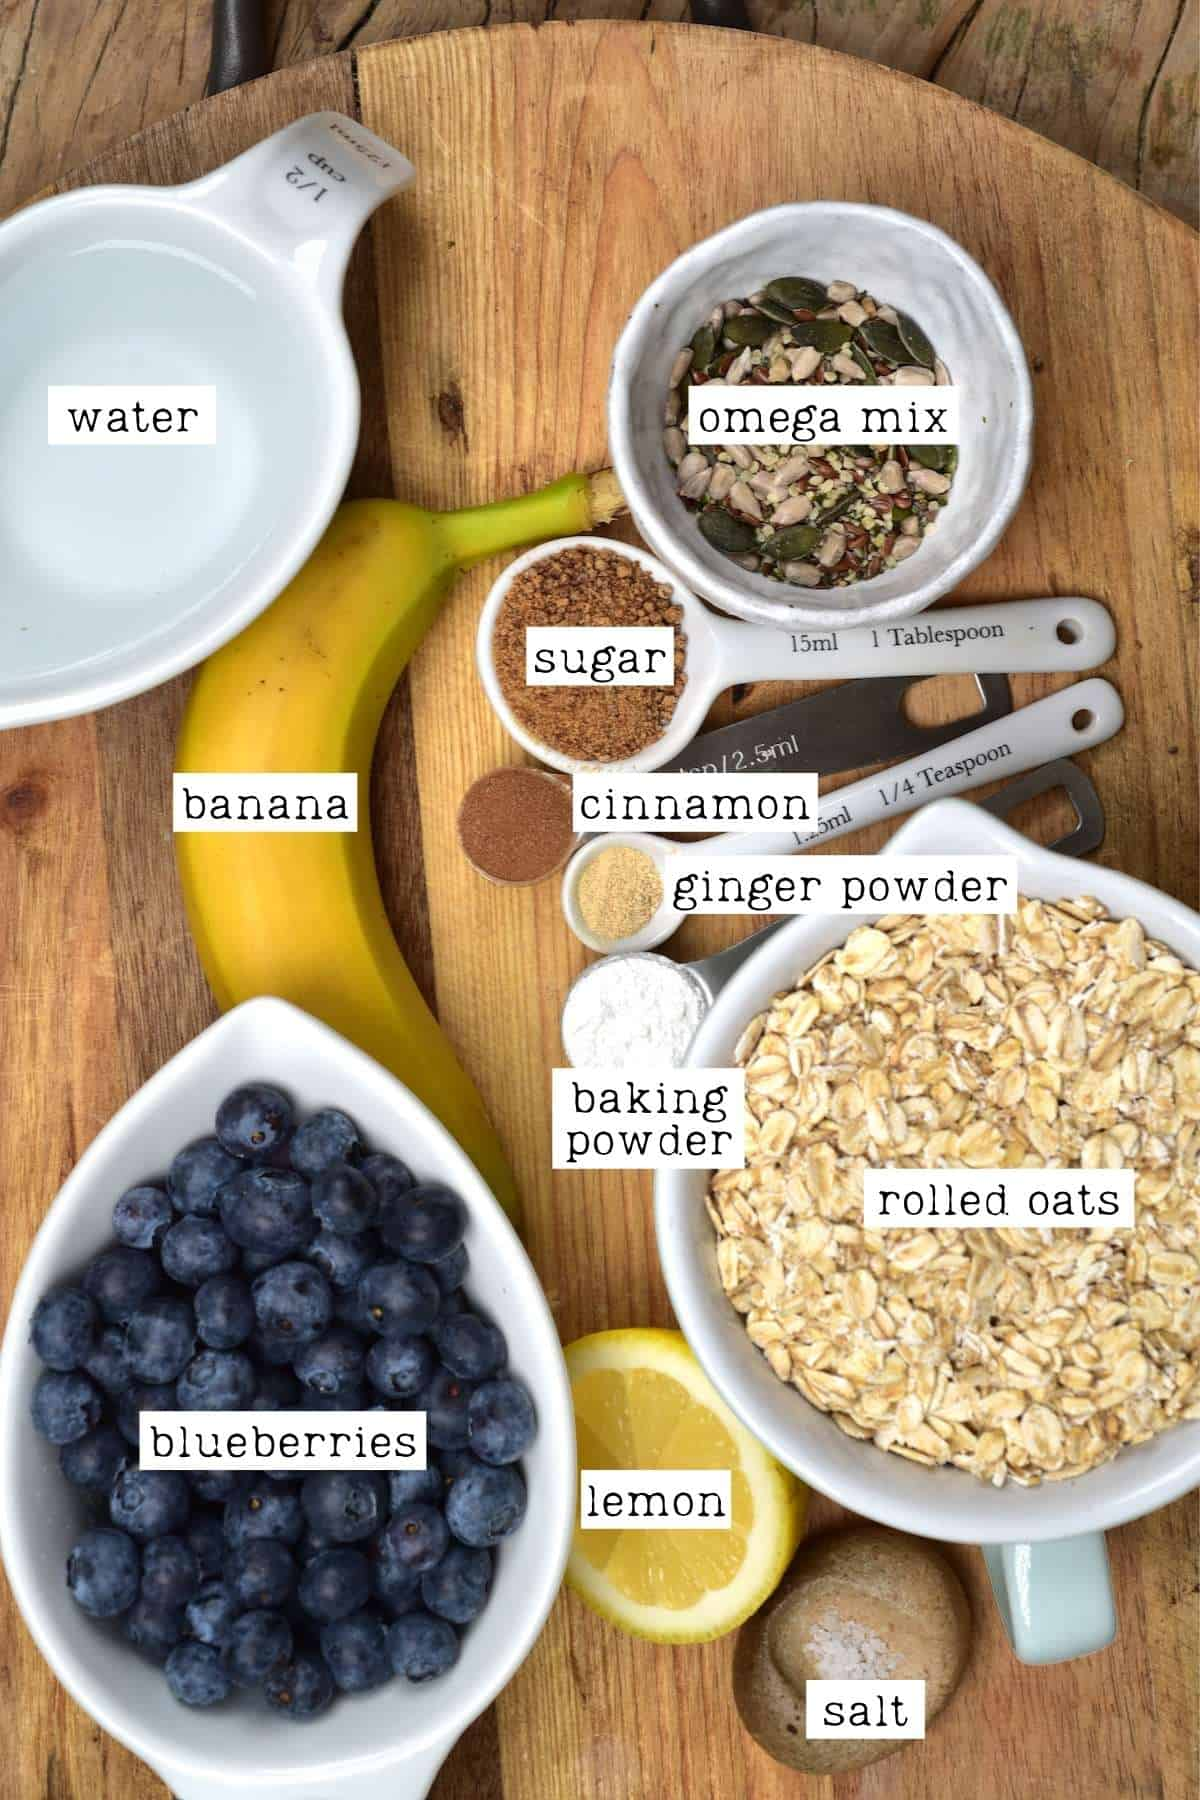 Ingredients for baked blueberry oats